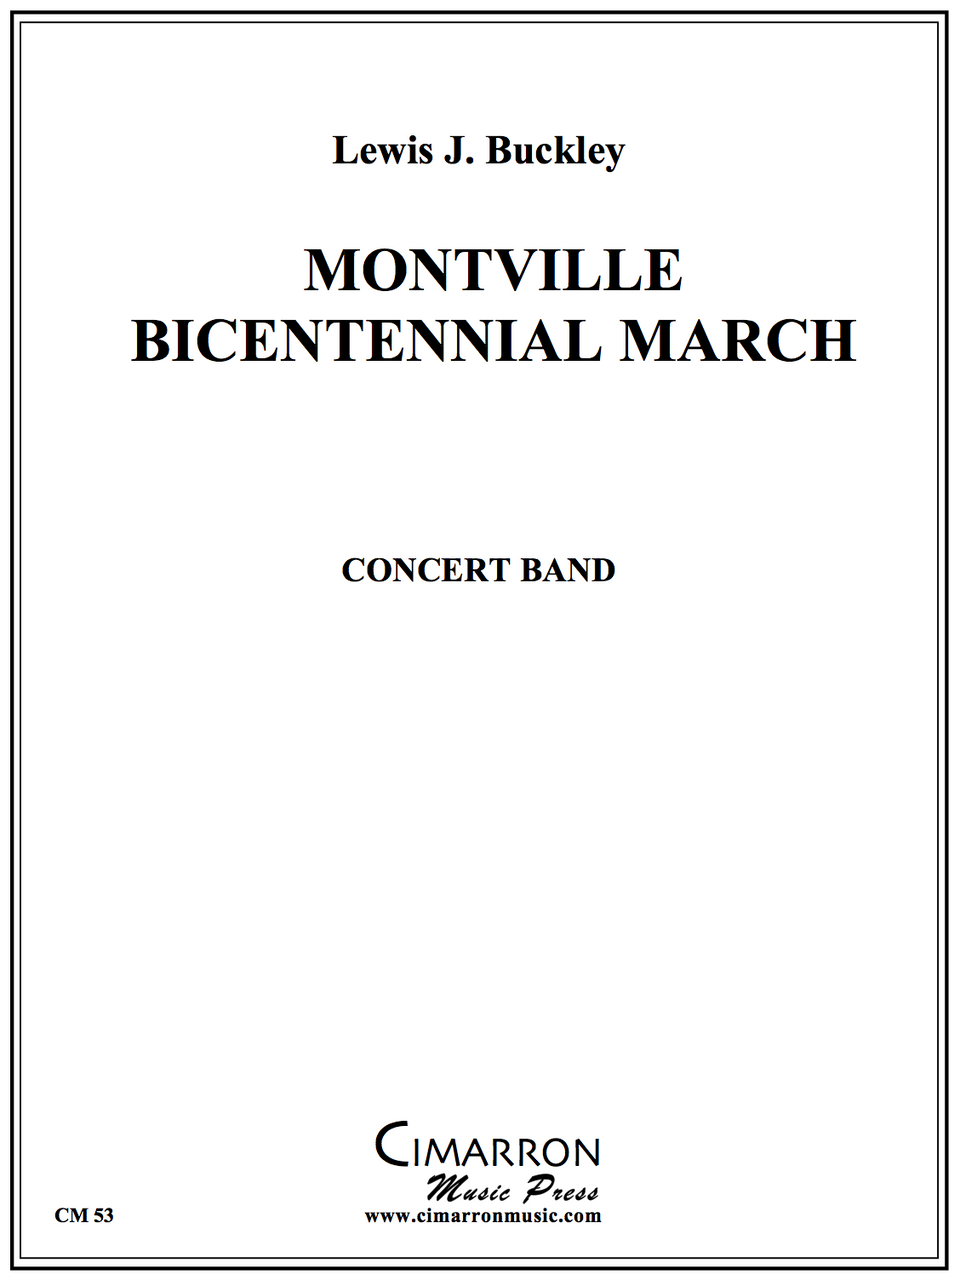 Buckley - Montville Bicentennial March - Concert Band